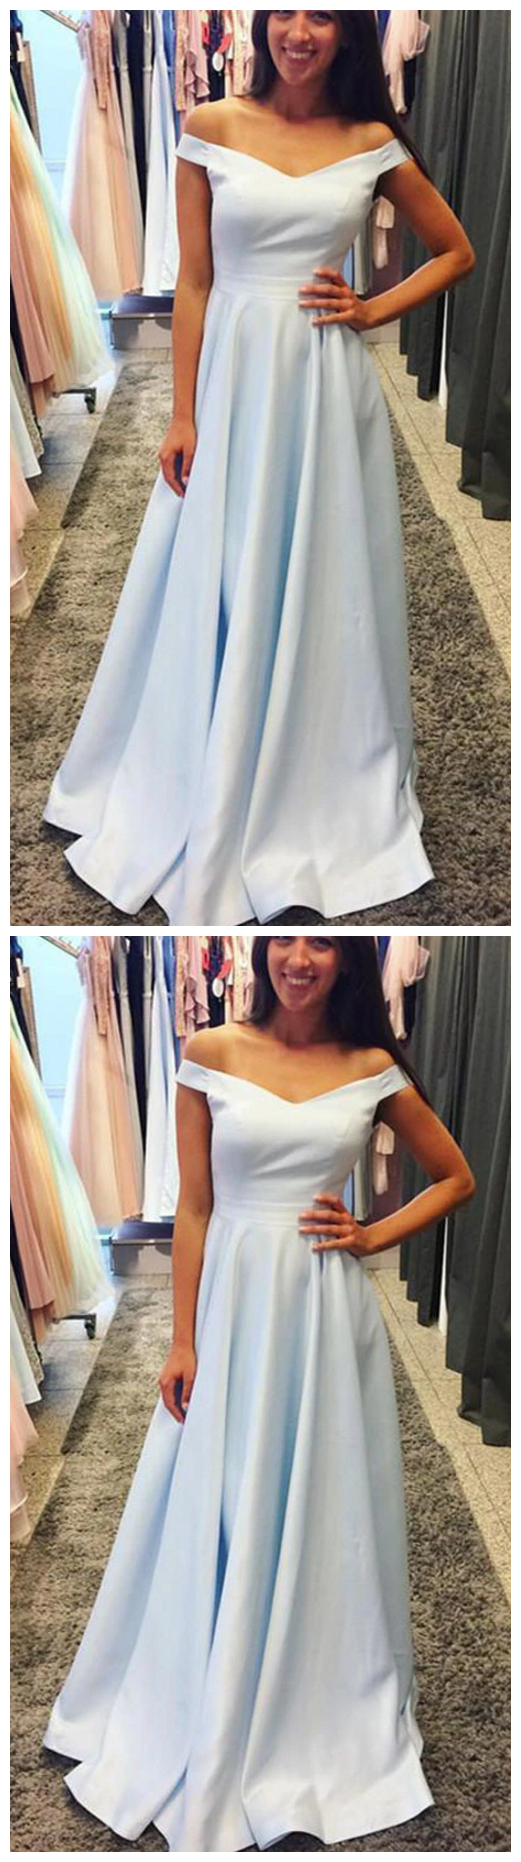 Prom Dresses,Modest Prom Dress,Prom Dress For Teens #modestprom